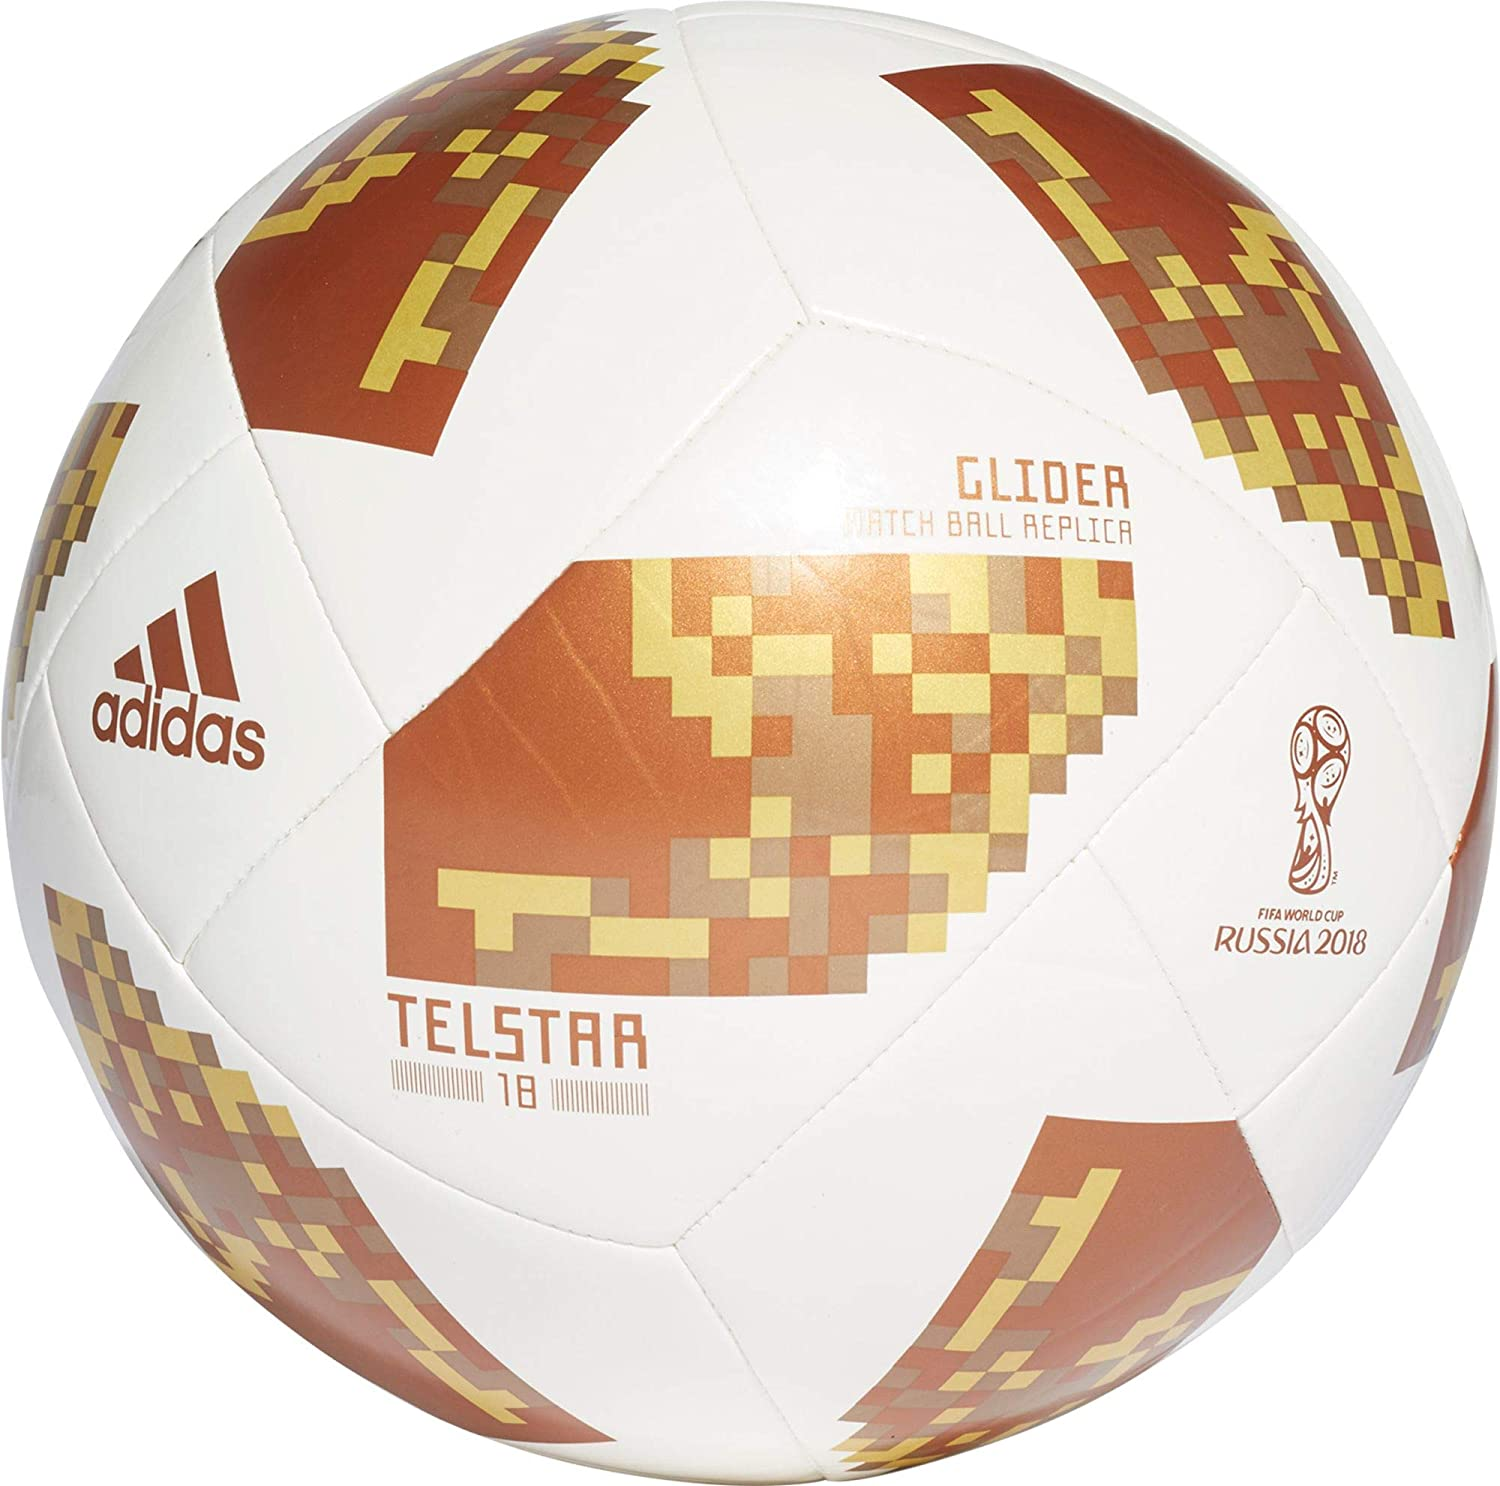 Minero Reproducir Tranquilidad de espíritu  Amazon.com : adidas Russia Telstar 2018 World Cup Glider Soccer Ball :  Sports & Outdoors